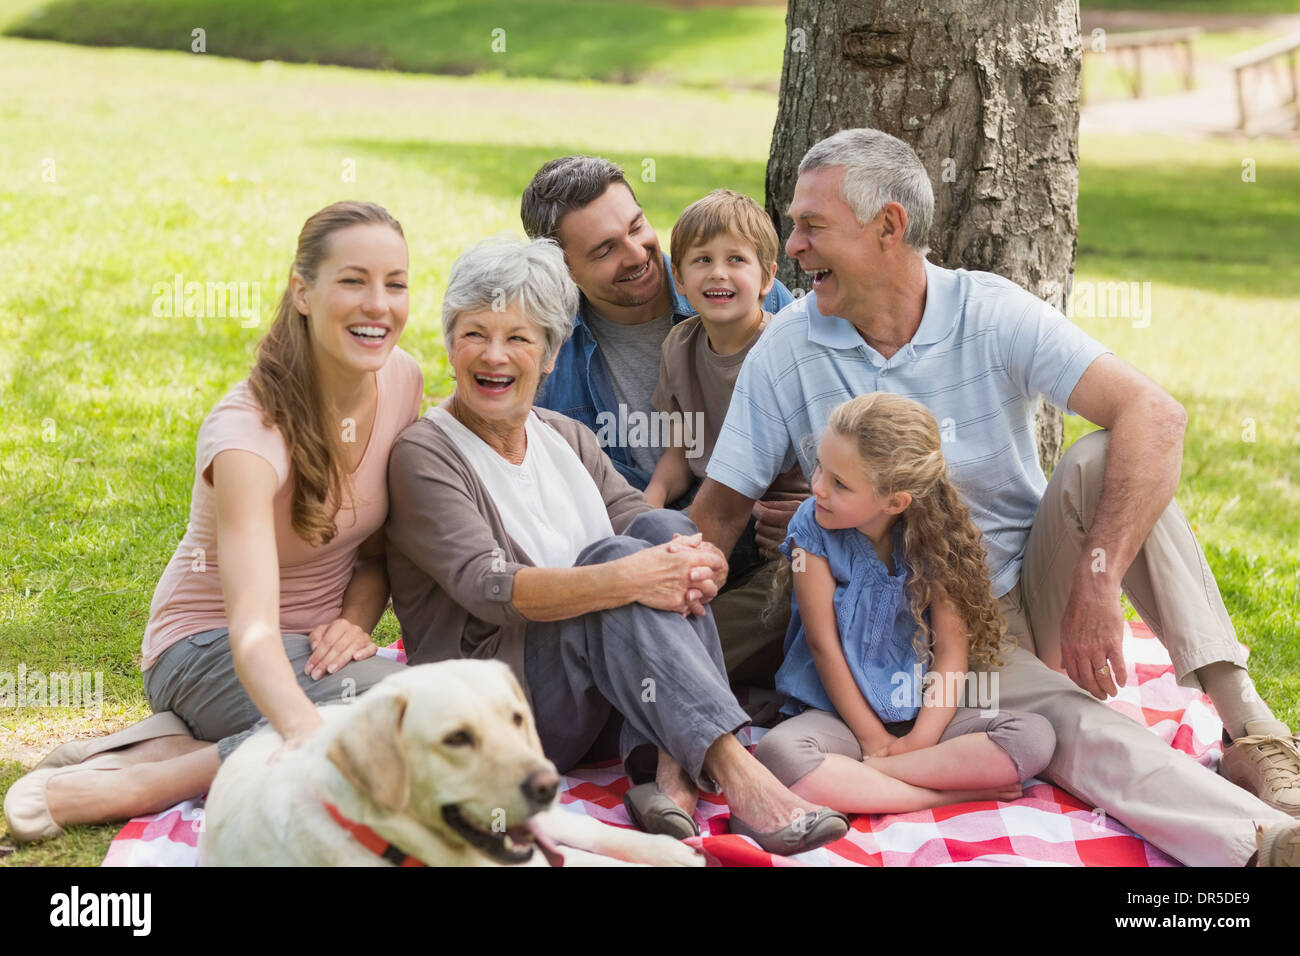 Extended family with their pet dog at park - Stock Image